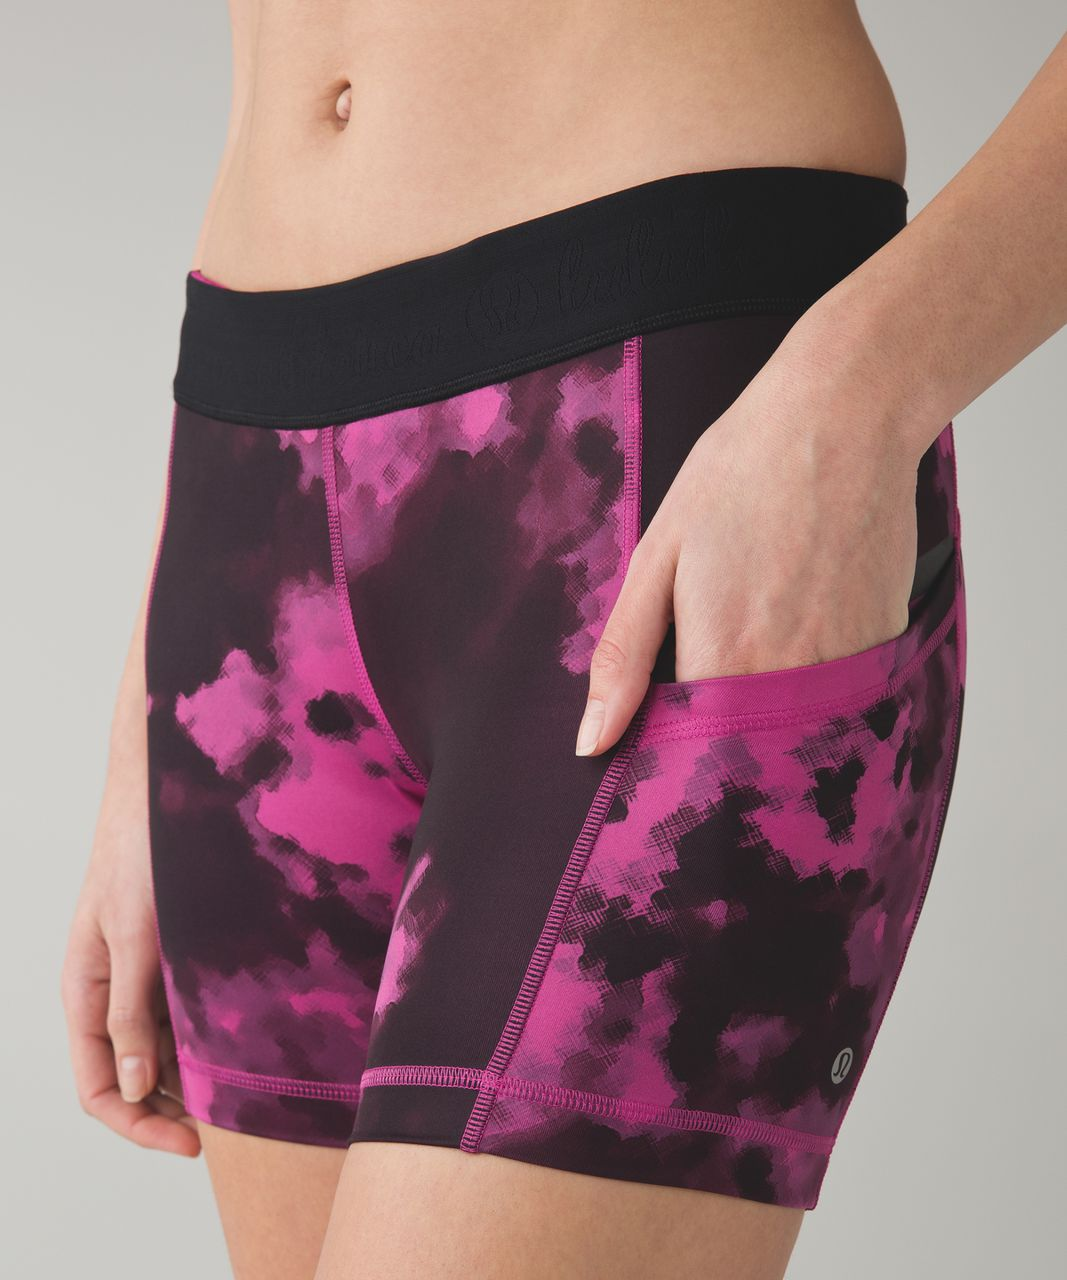 Lululemon What The Sport Short II - Blooming Pixie Raspberry Black